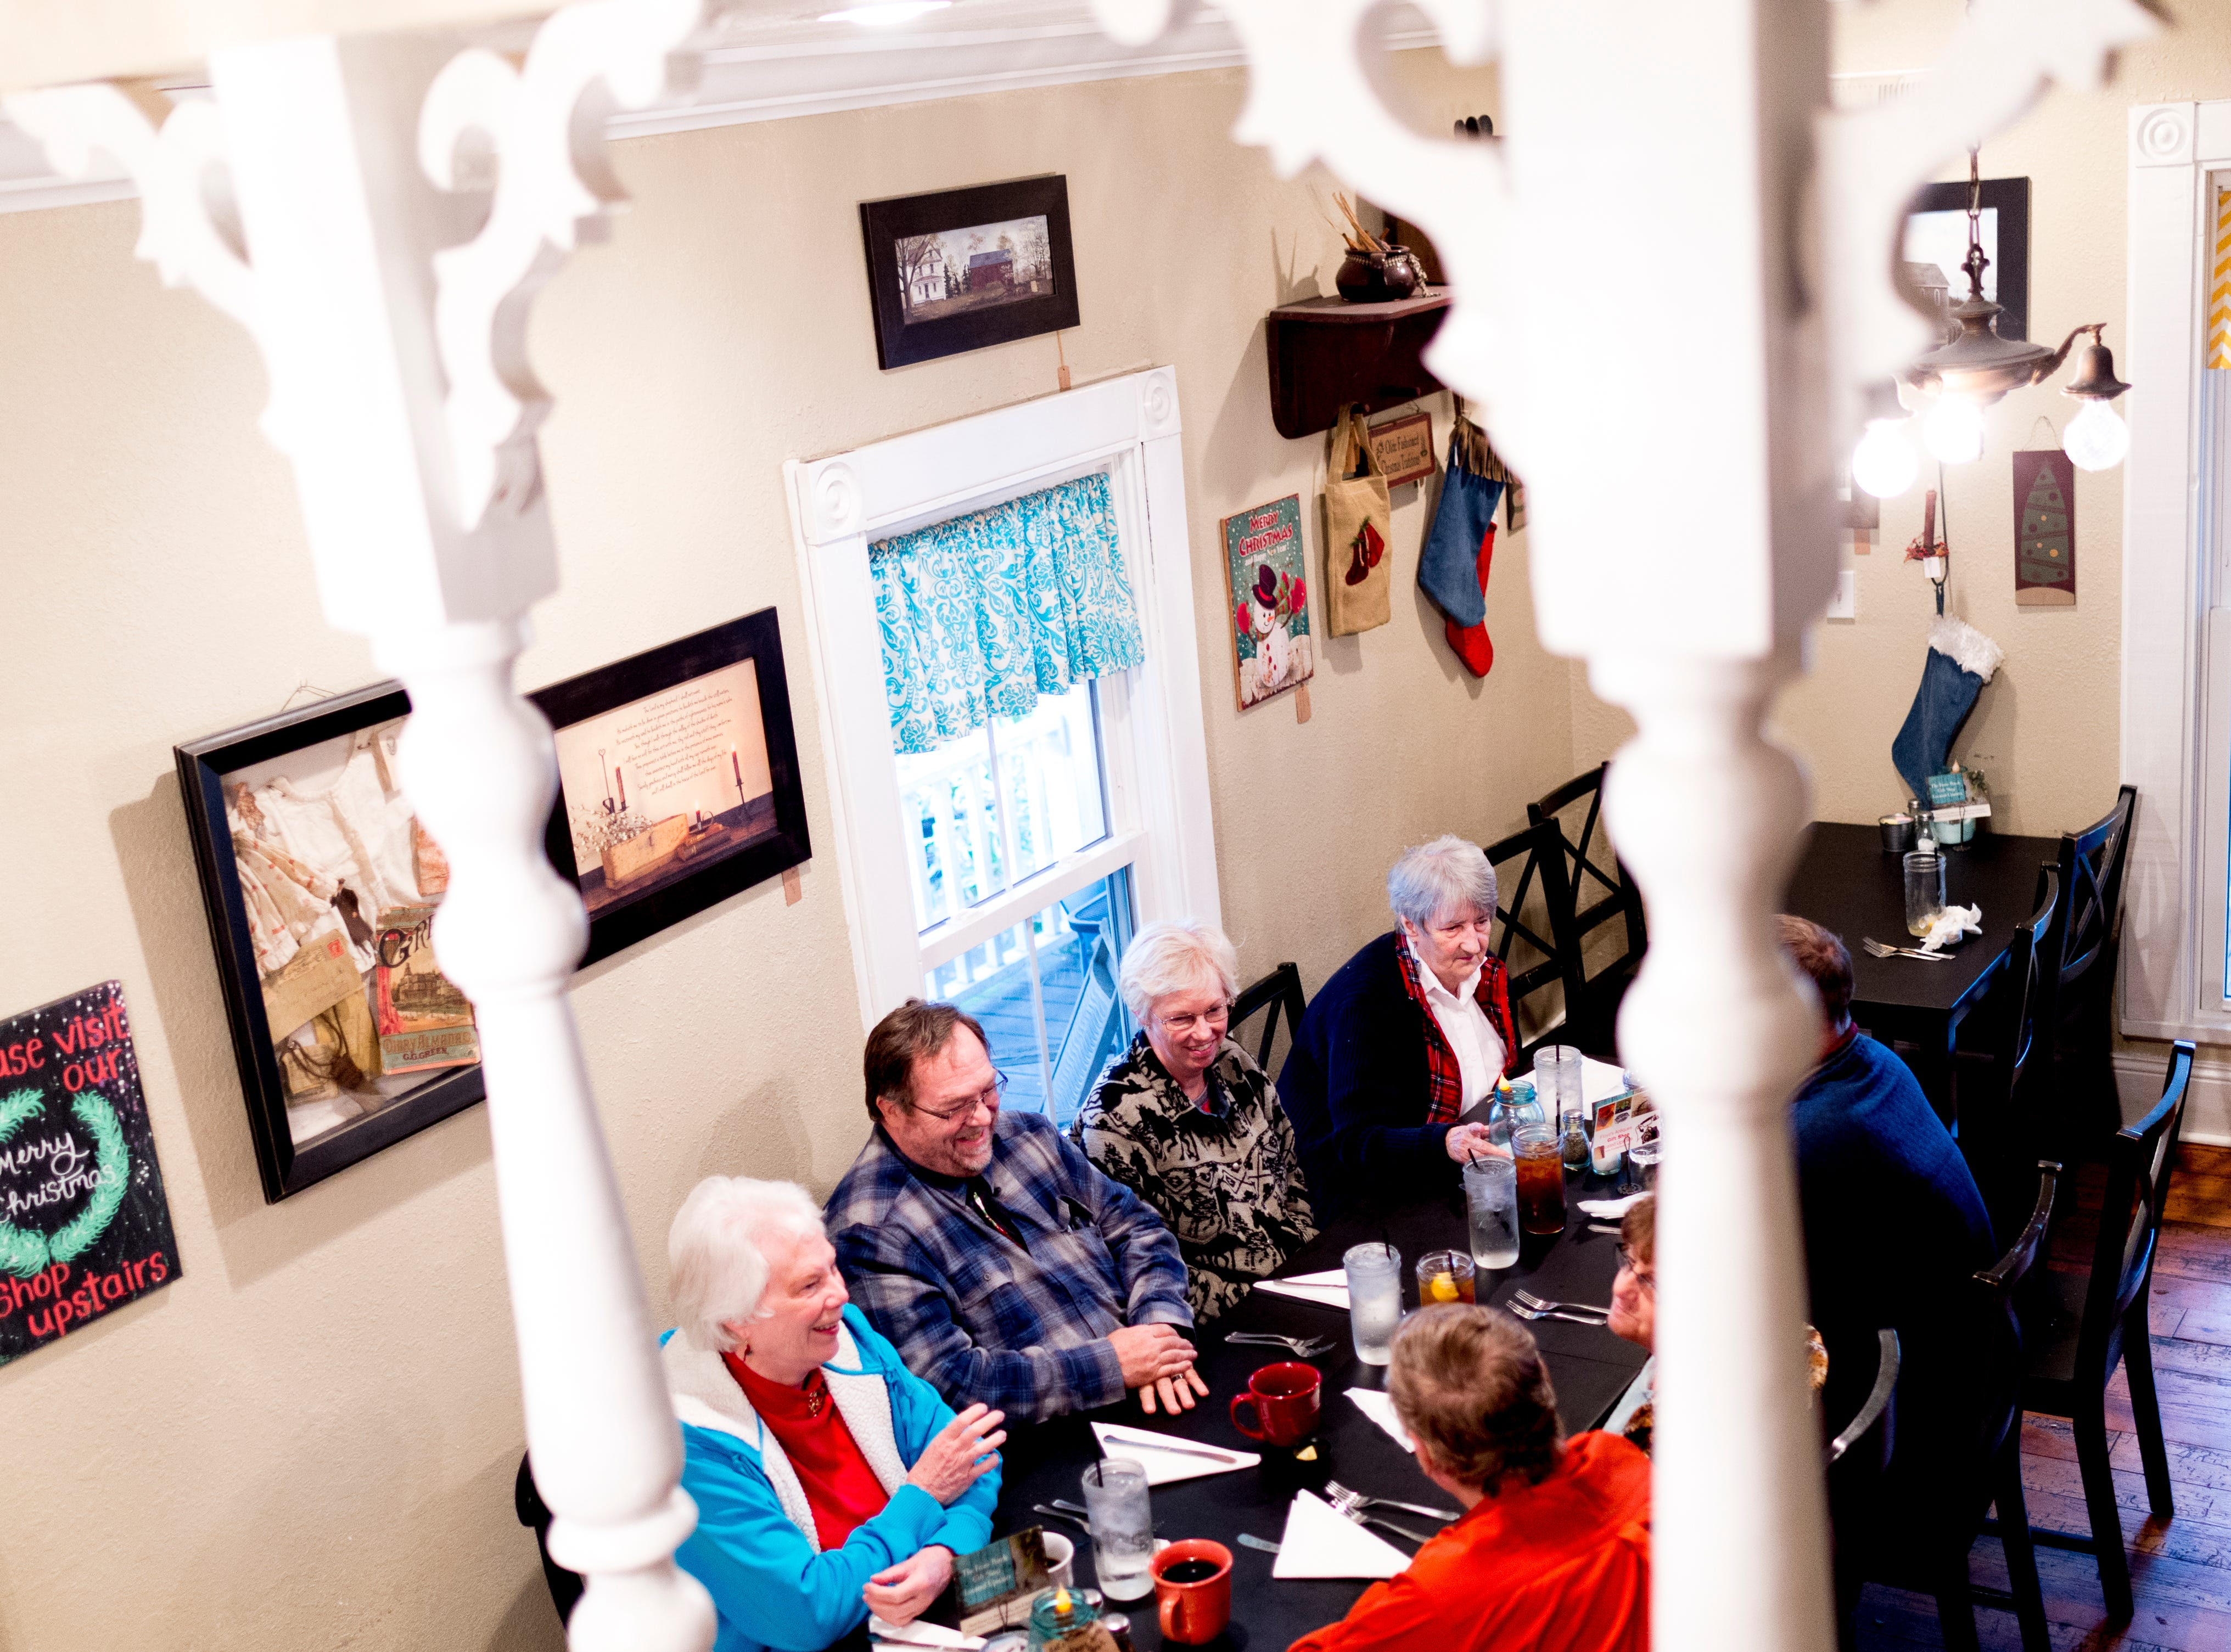 Patrons dine in the dining room at The Front Porch Restaurant in Powell, Tennessee on Saturday, December 29, 2018. For five years, owner Bart Elkins has worked to revive that experience of the front porch being used as the focus for family and friends.